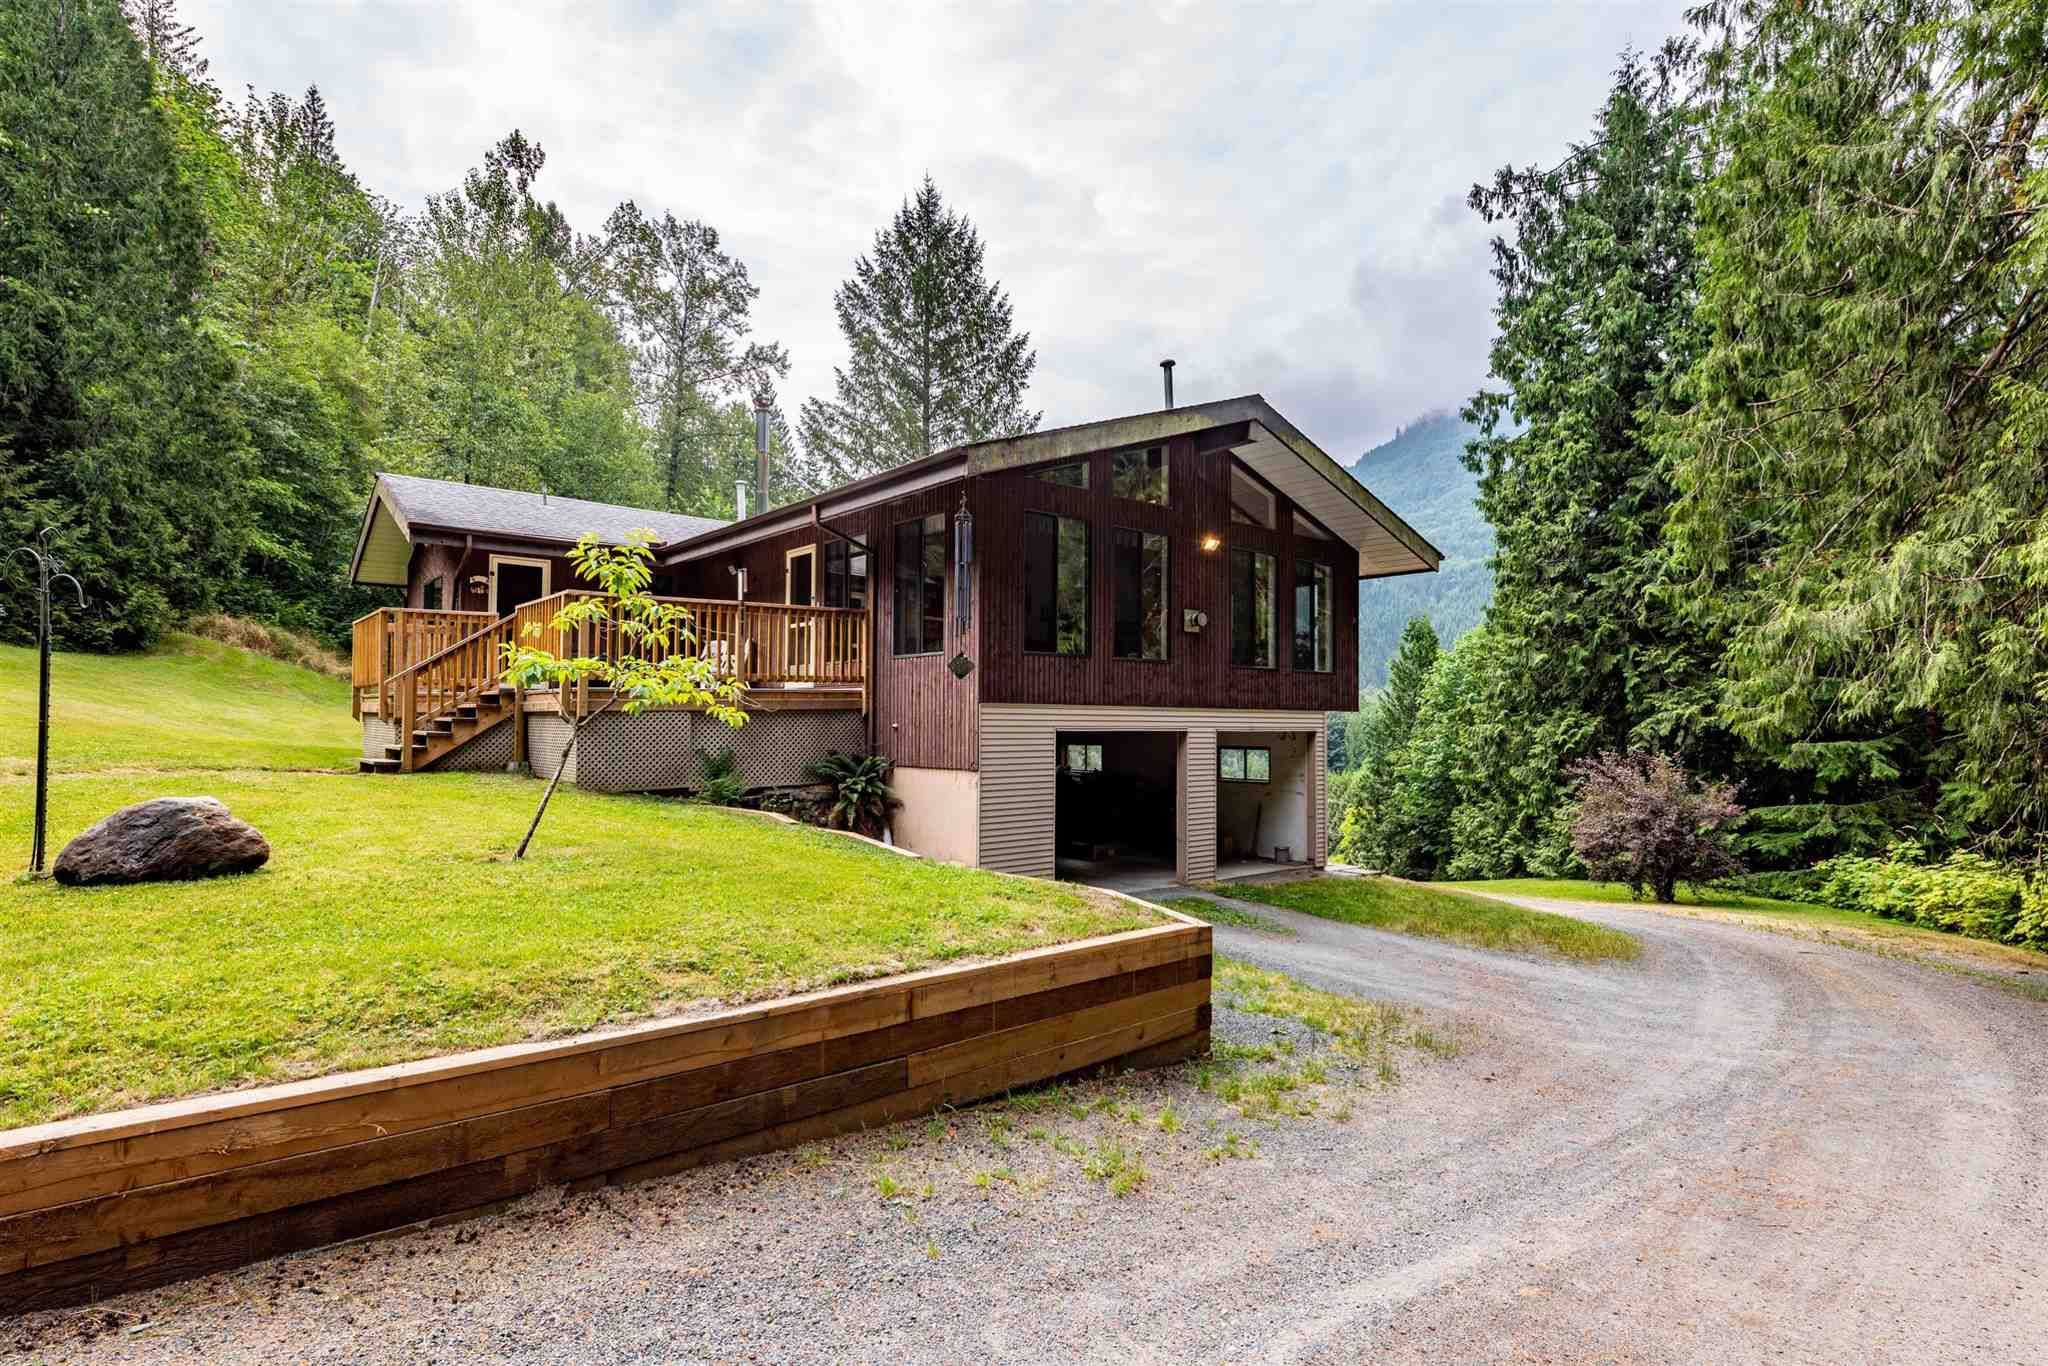 """Main Photo: 49199 CHILLIWACK LAKE Road in Chilliwack: Chilliwack River Valley House for sale in """"Chilliwack River Valley"""" (Sardis) : MLS®# R2597869"""